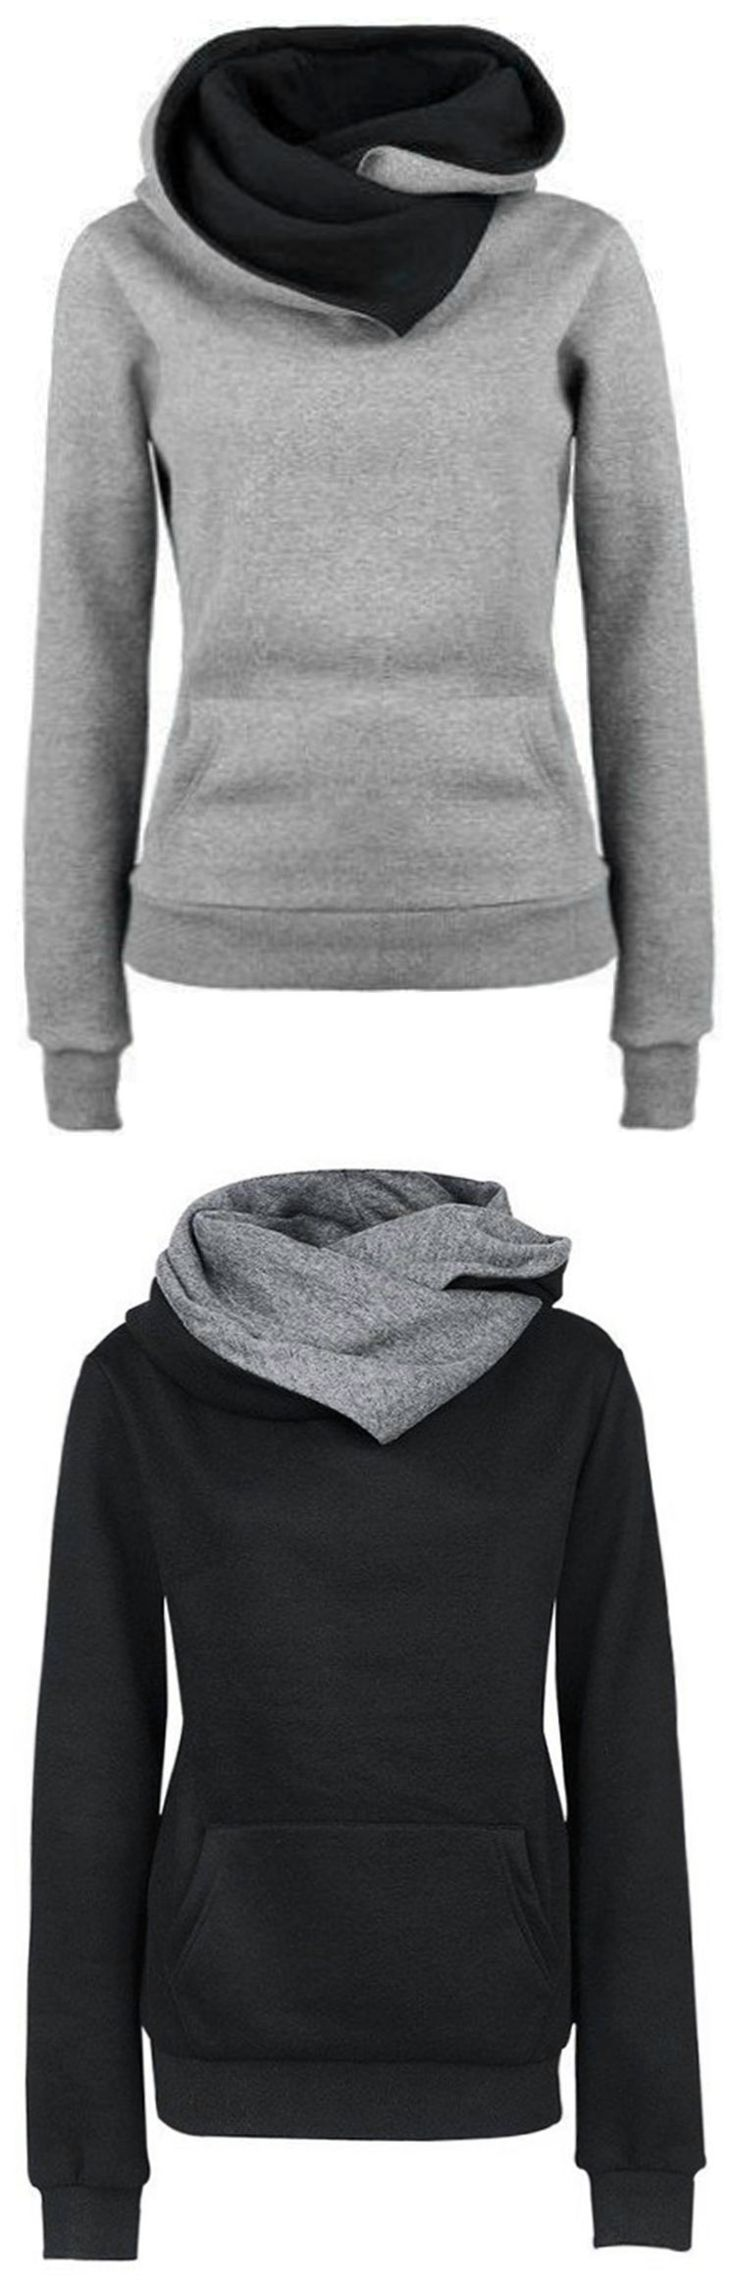 Seeking warmth is the instinct in winter! Free shipping&easy return! This high neck sweatshirt detailed with fleece lining&kangaroo pocket will offer you this cozy&chic look! Take it at Cupshe.com